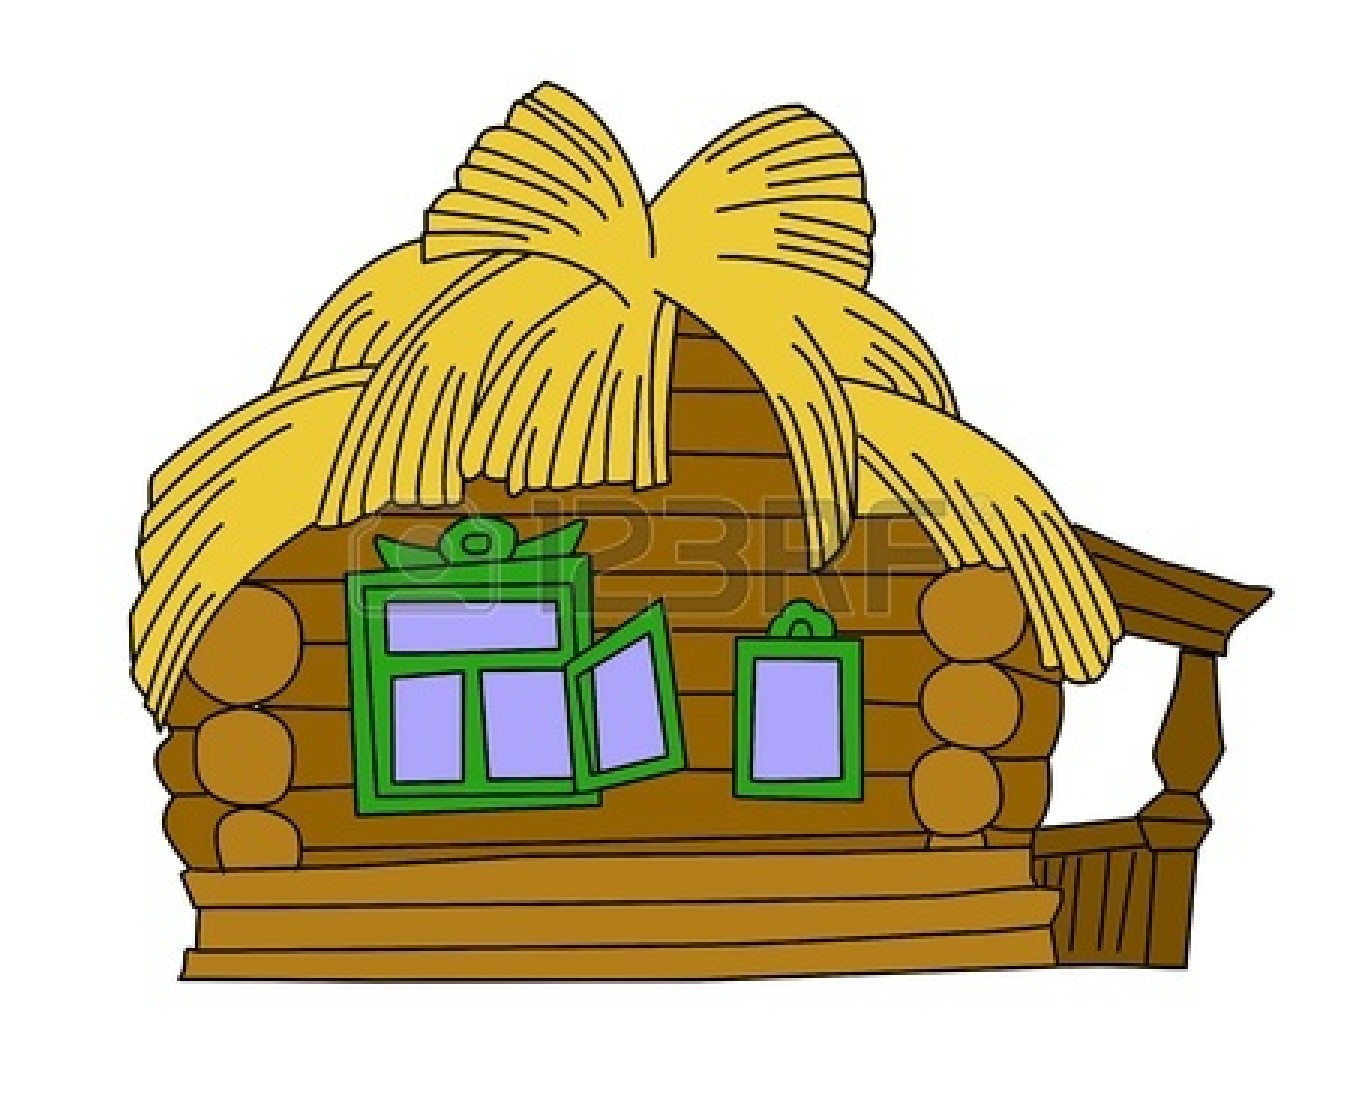 Straw hut clipart 20 free Cliparts | Download images on ...